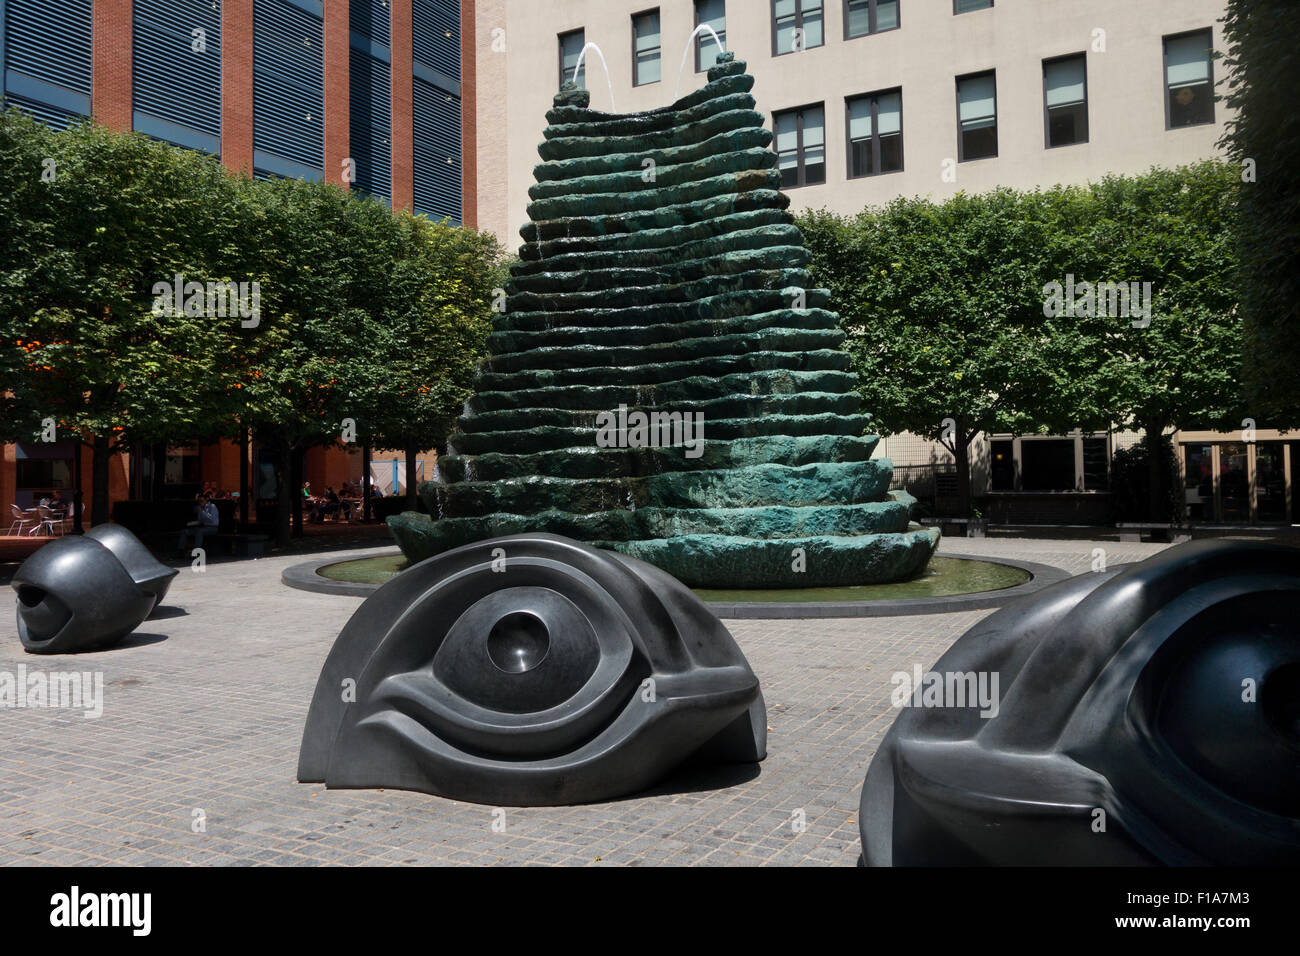 Eyeball benches are a recognizable feature of Agnes R. Katz plaza, otherwise known as 'eyeball park' in - Stock Image